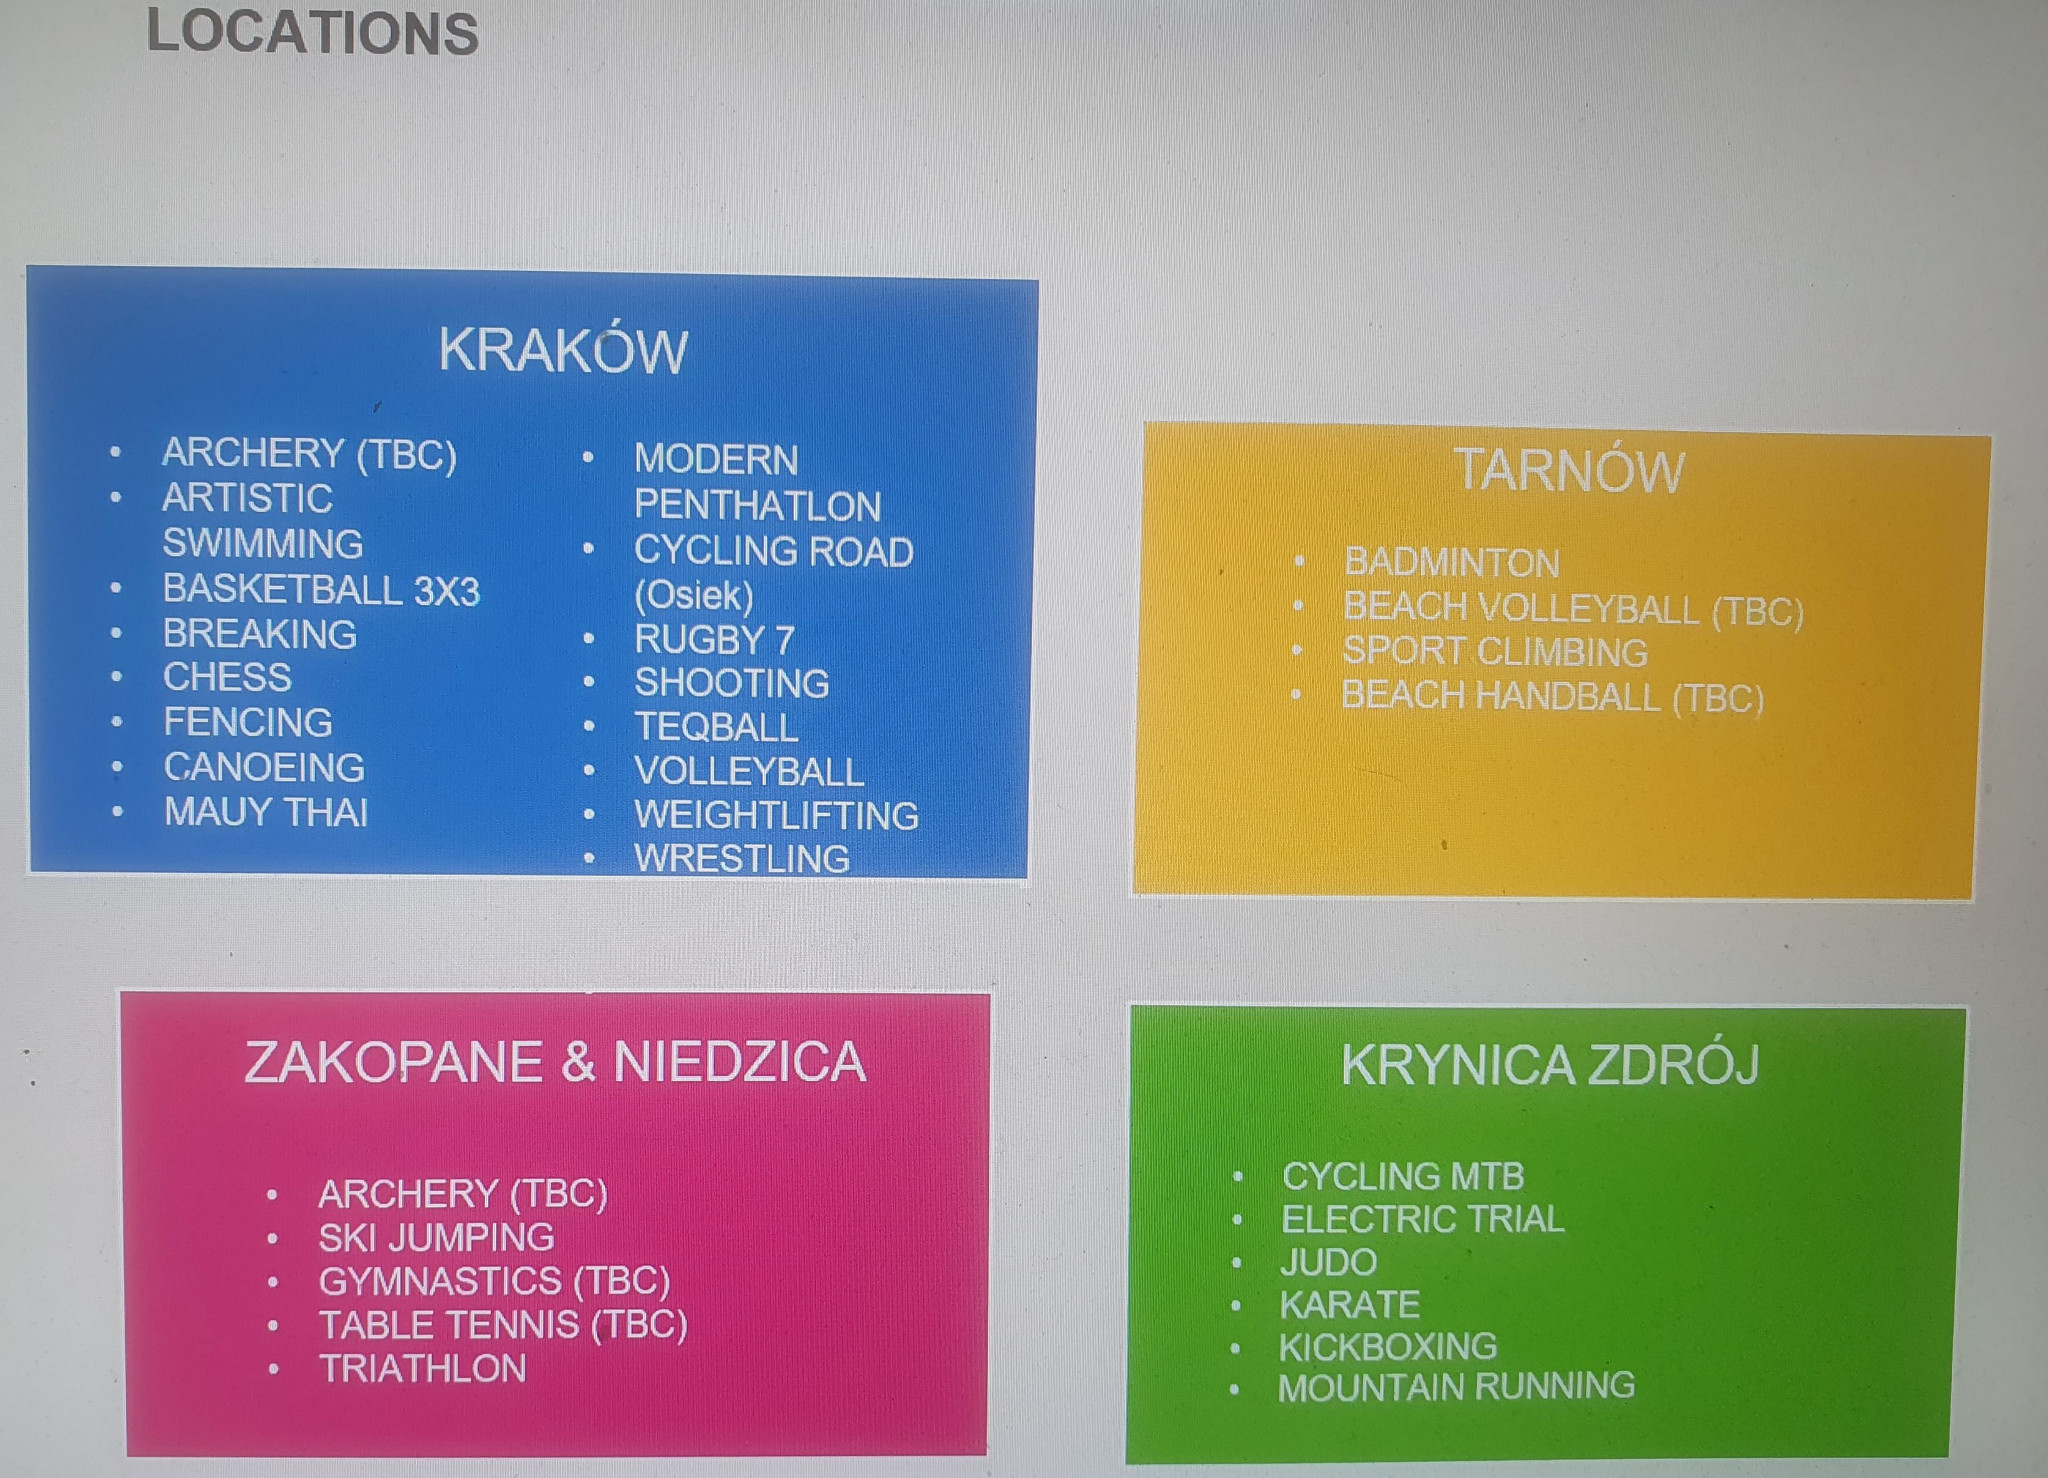 The Polish Olympic Committee published a list of sports and their locations at the Games ©Polish Olympic Committee